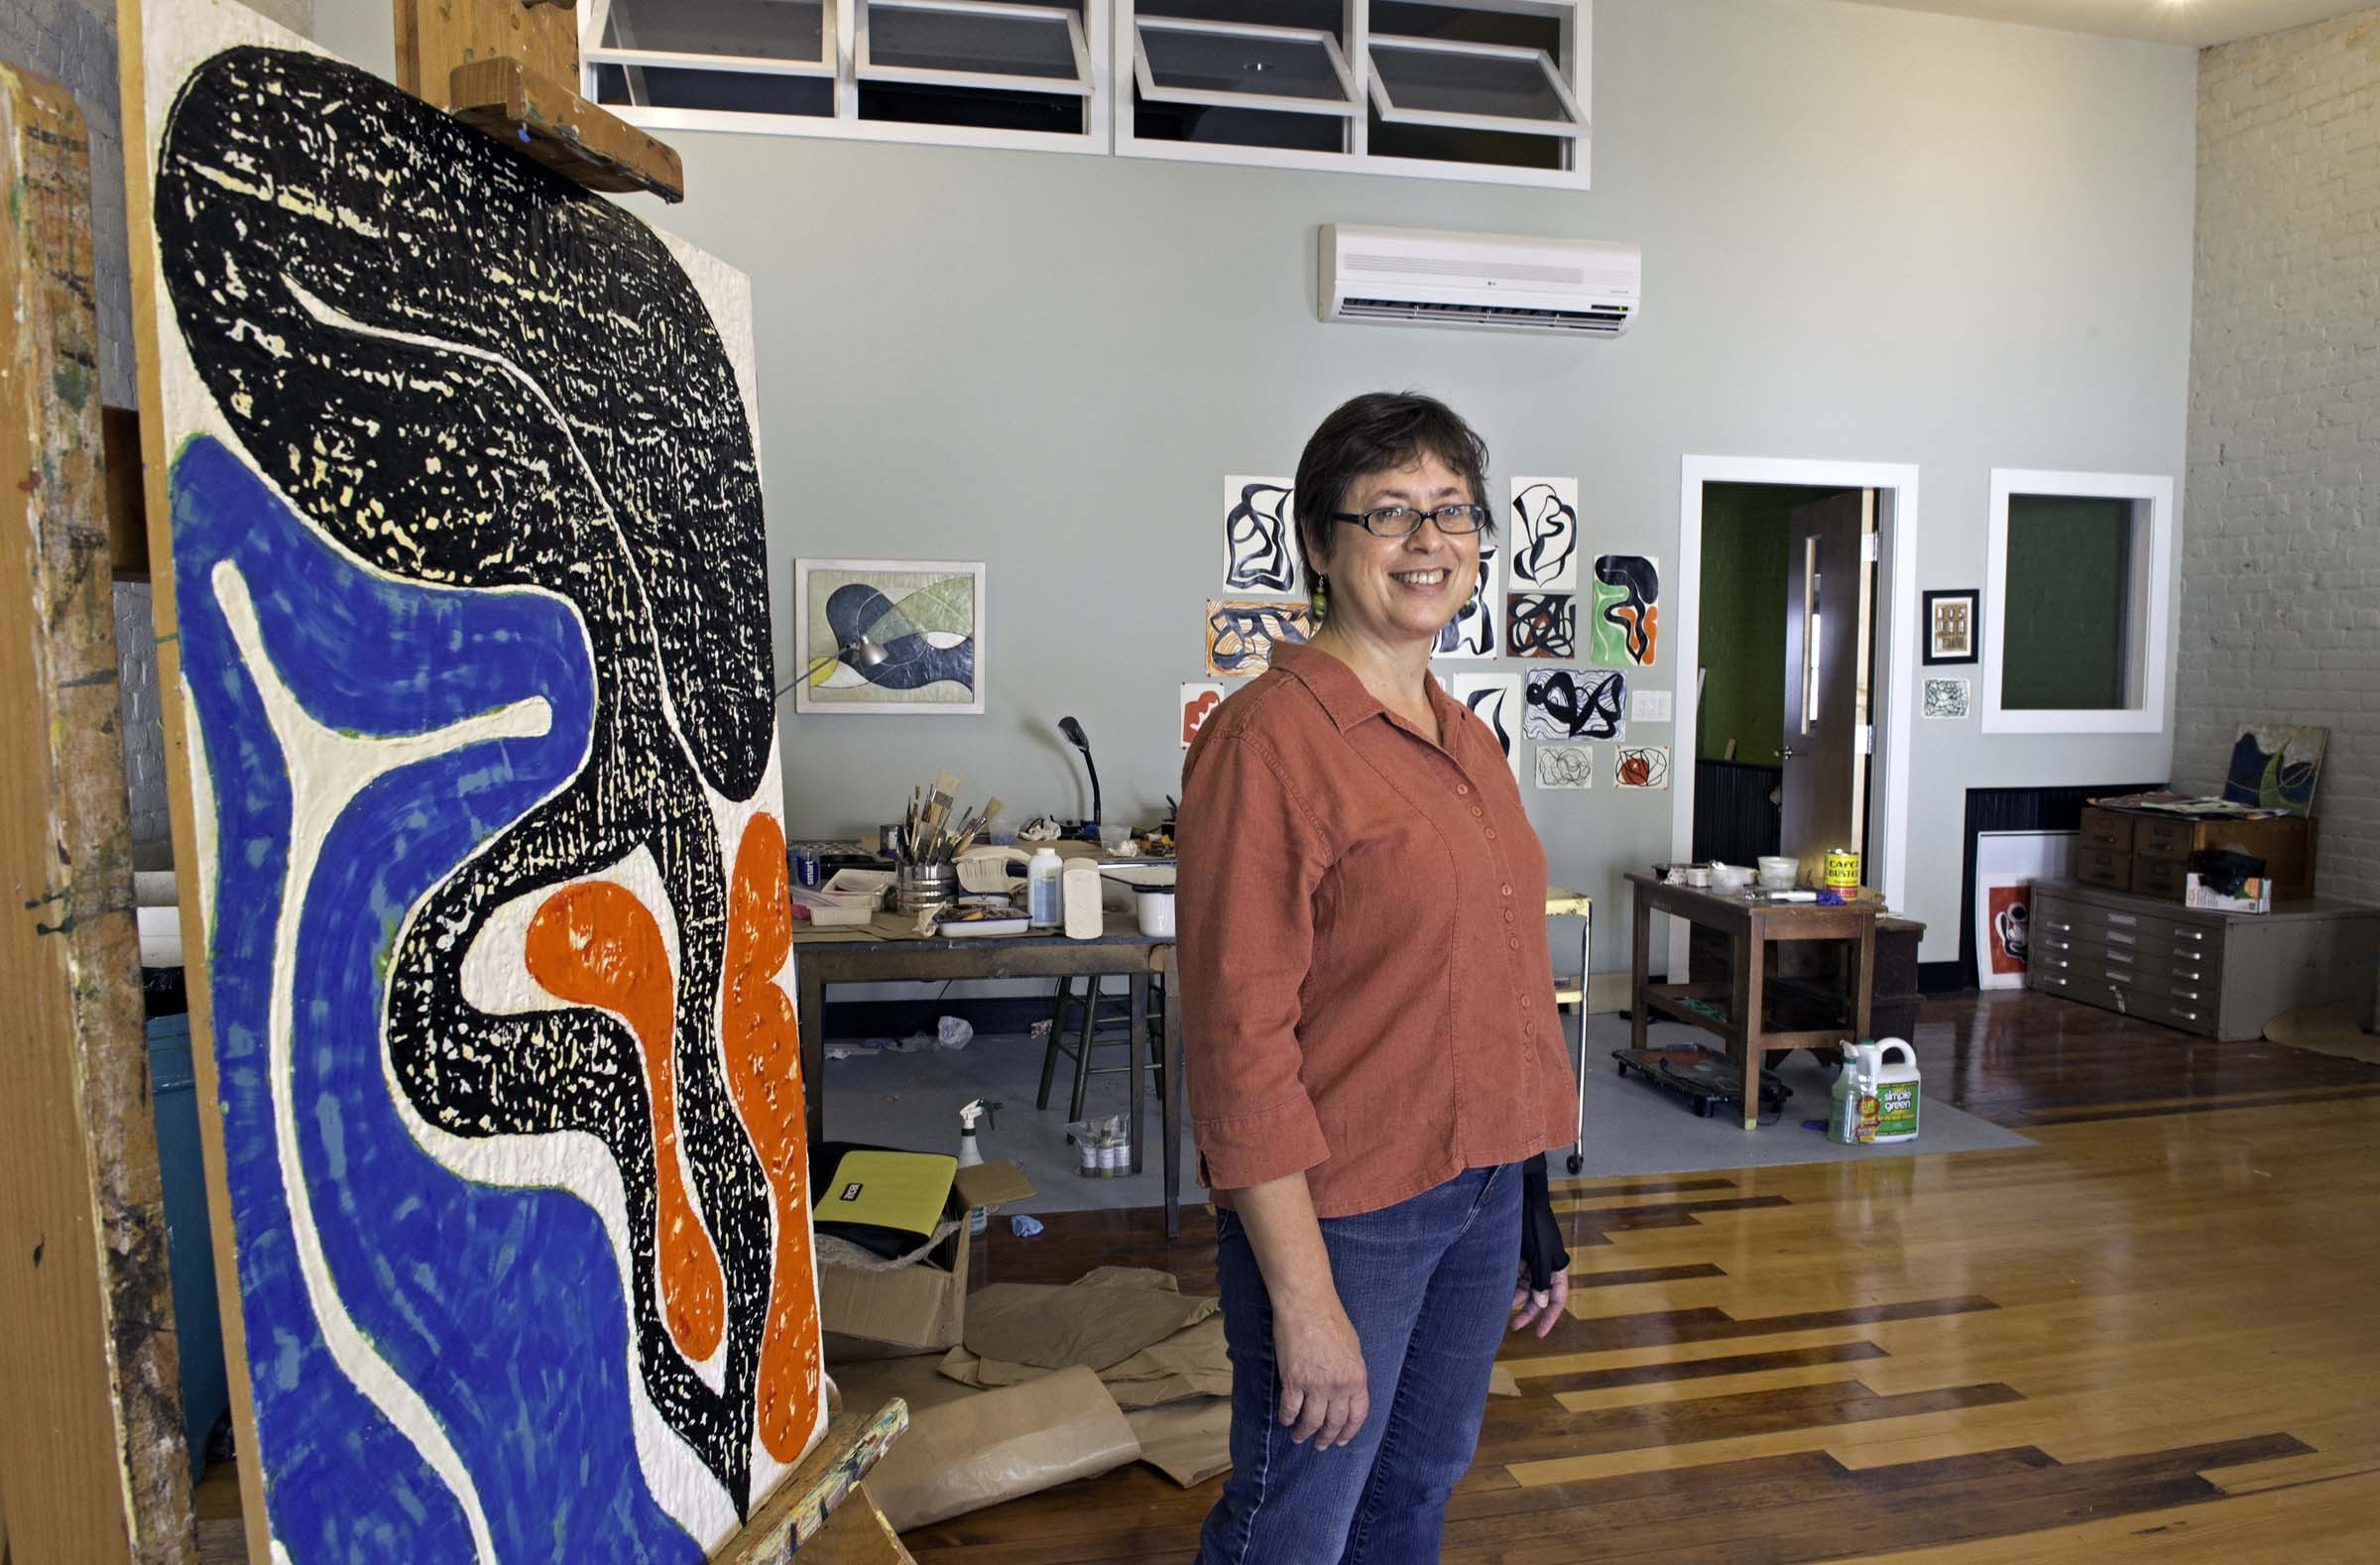 Dolly Holmes and husband Mark Pehanich have built studios downtown for their painting and sculpting. - SCOTT ELMQUIST